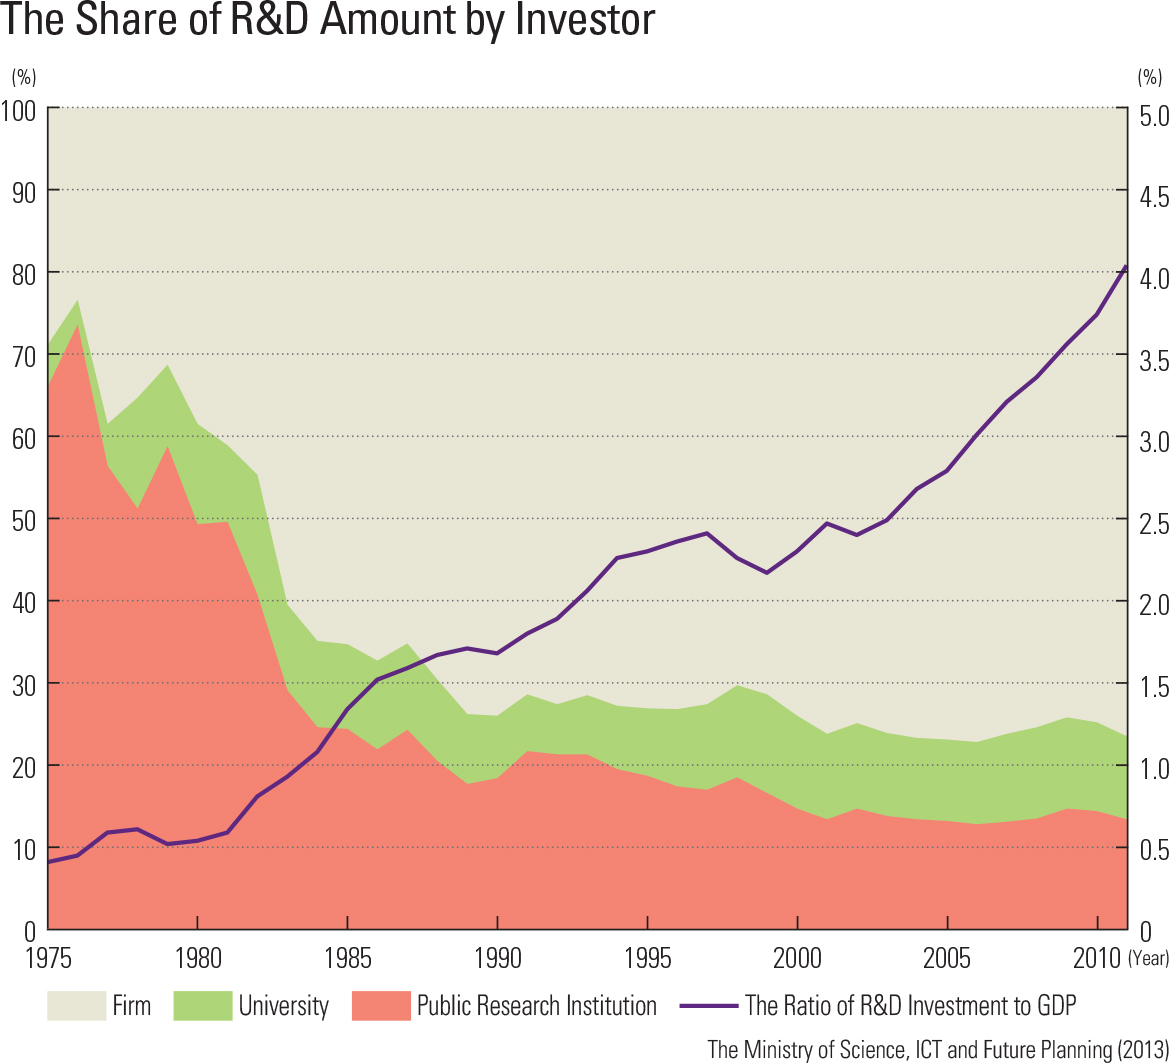 The Share of R&D Amount by Investor